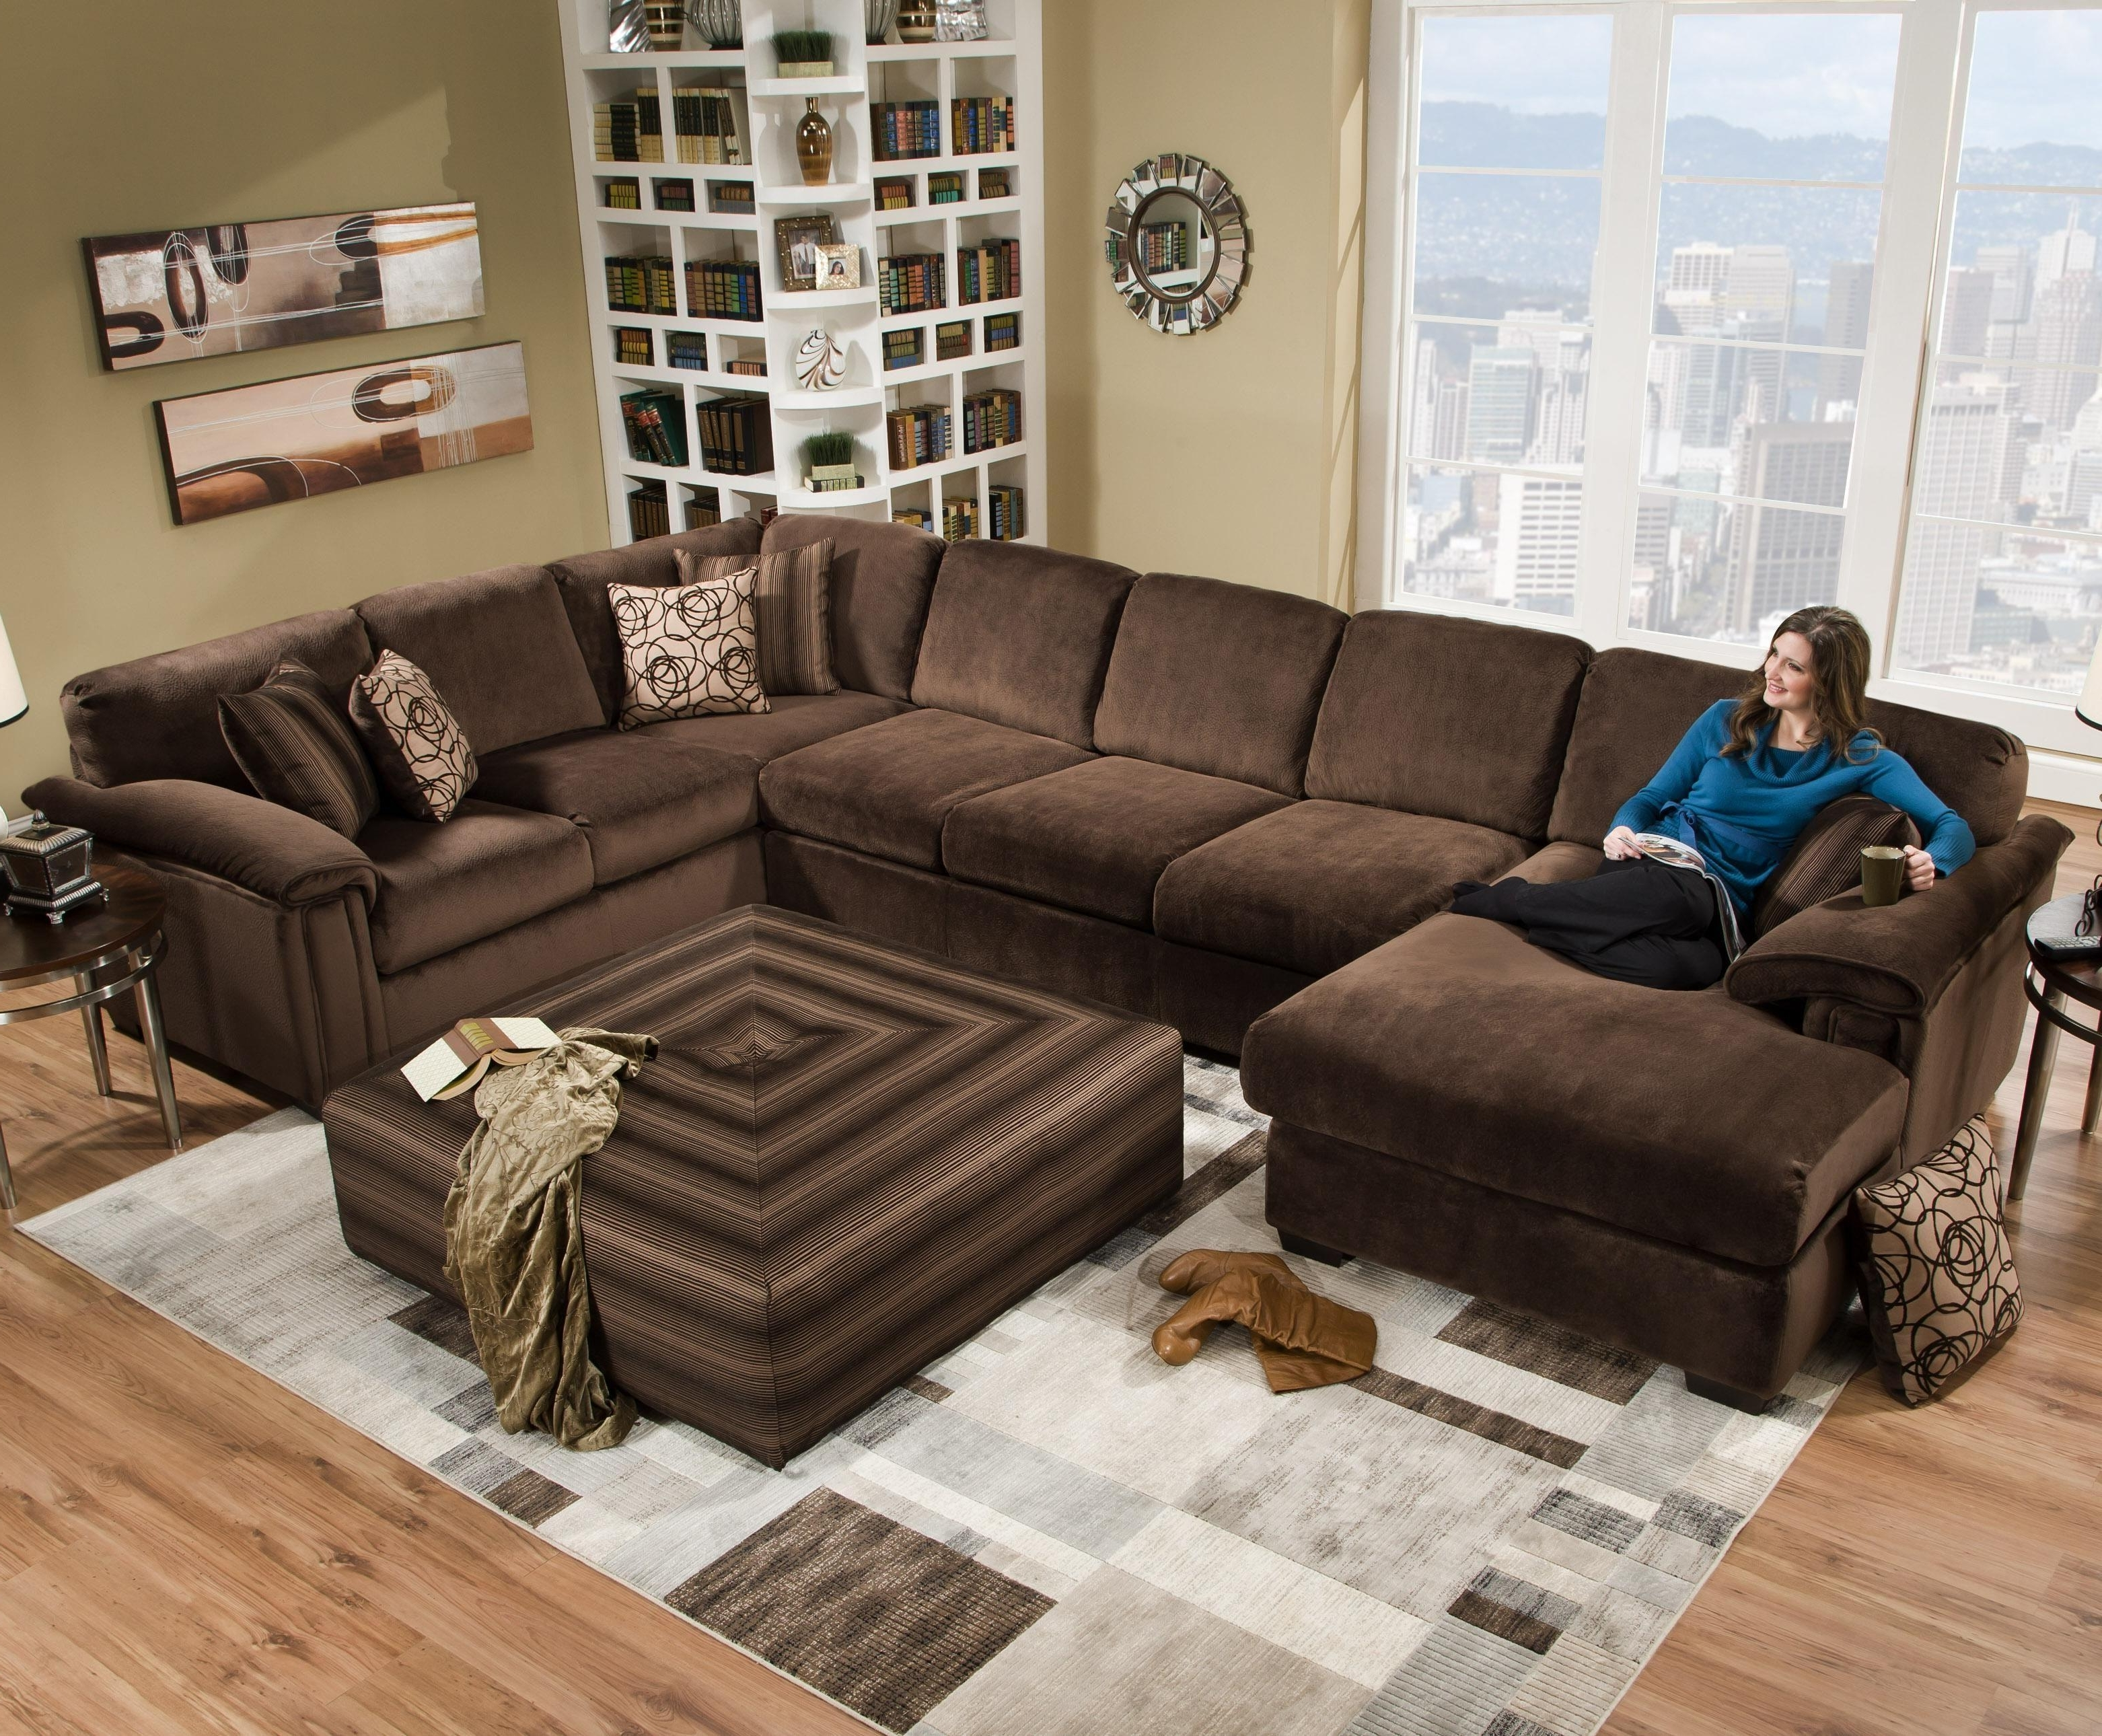 Explore Gallery Of Nebraska Furniture Mart Sectional Sofas Showing